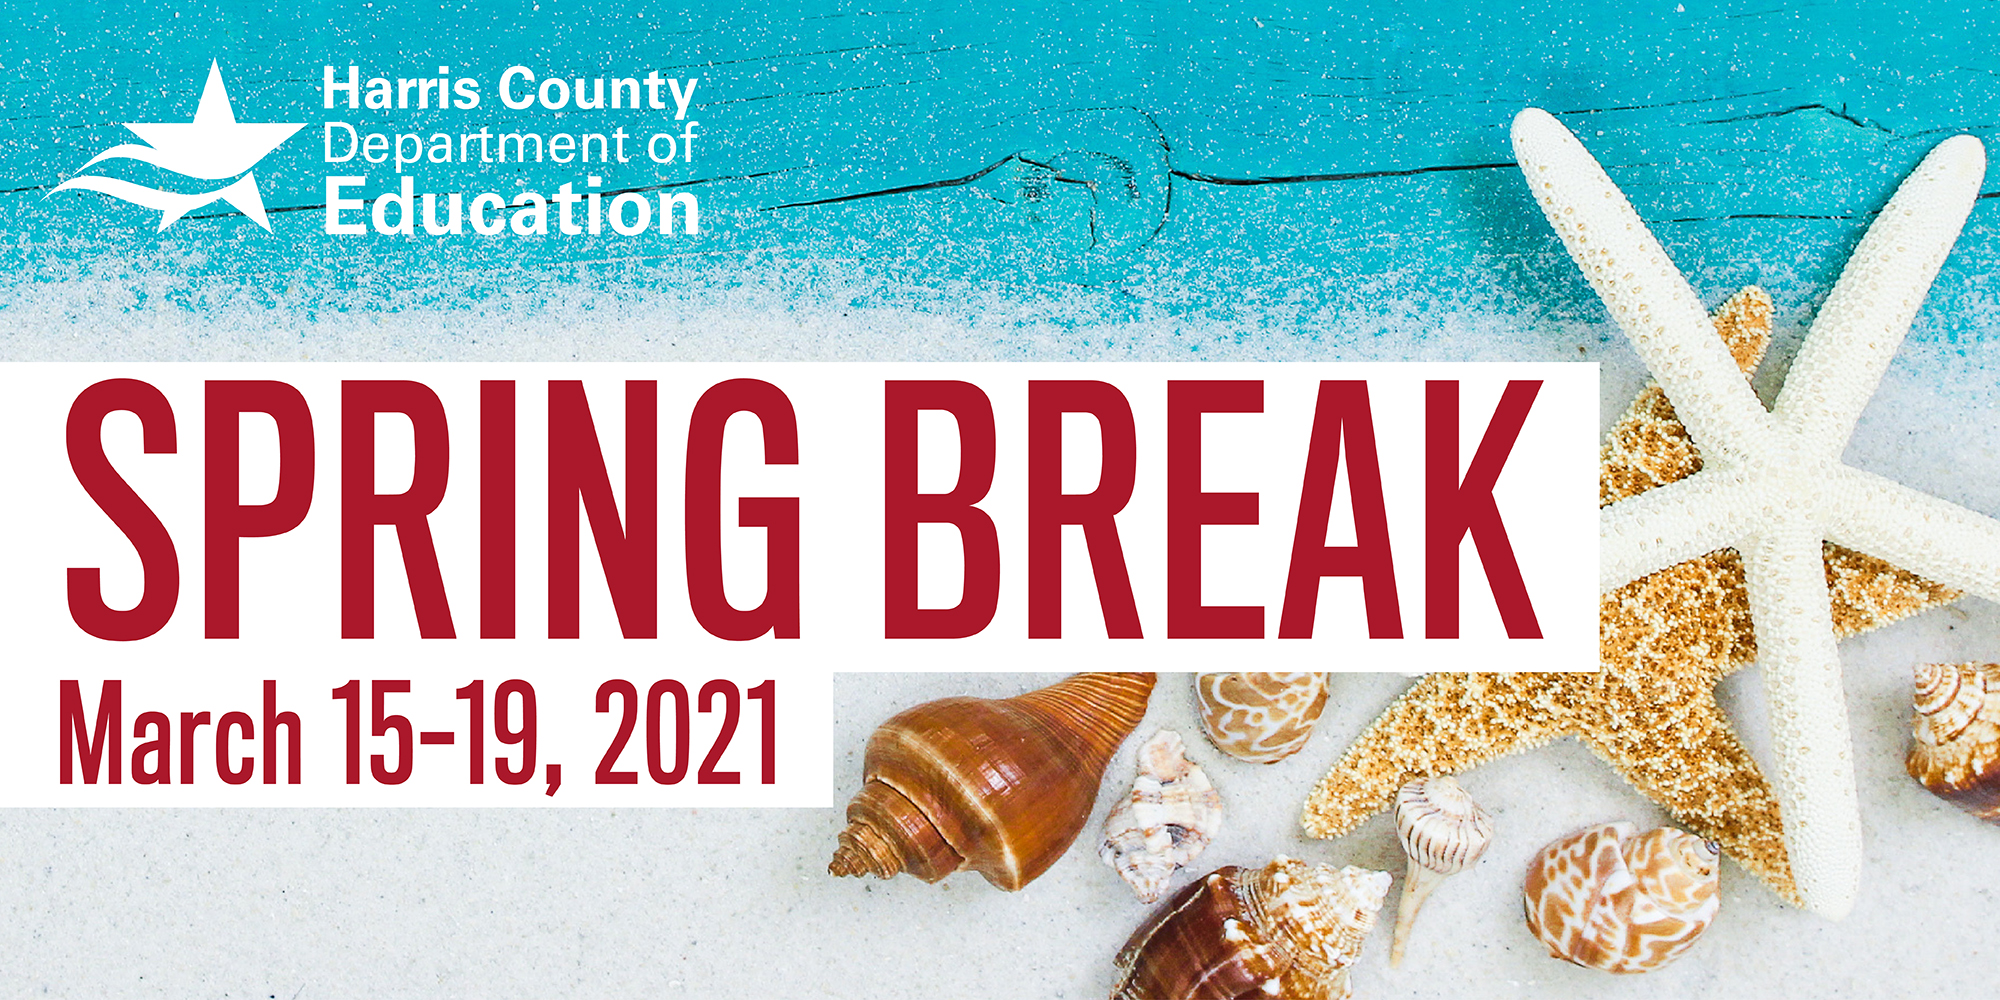 All HCDE campuses and offices will be closed for Spring Break